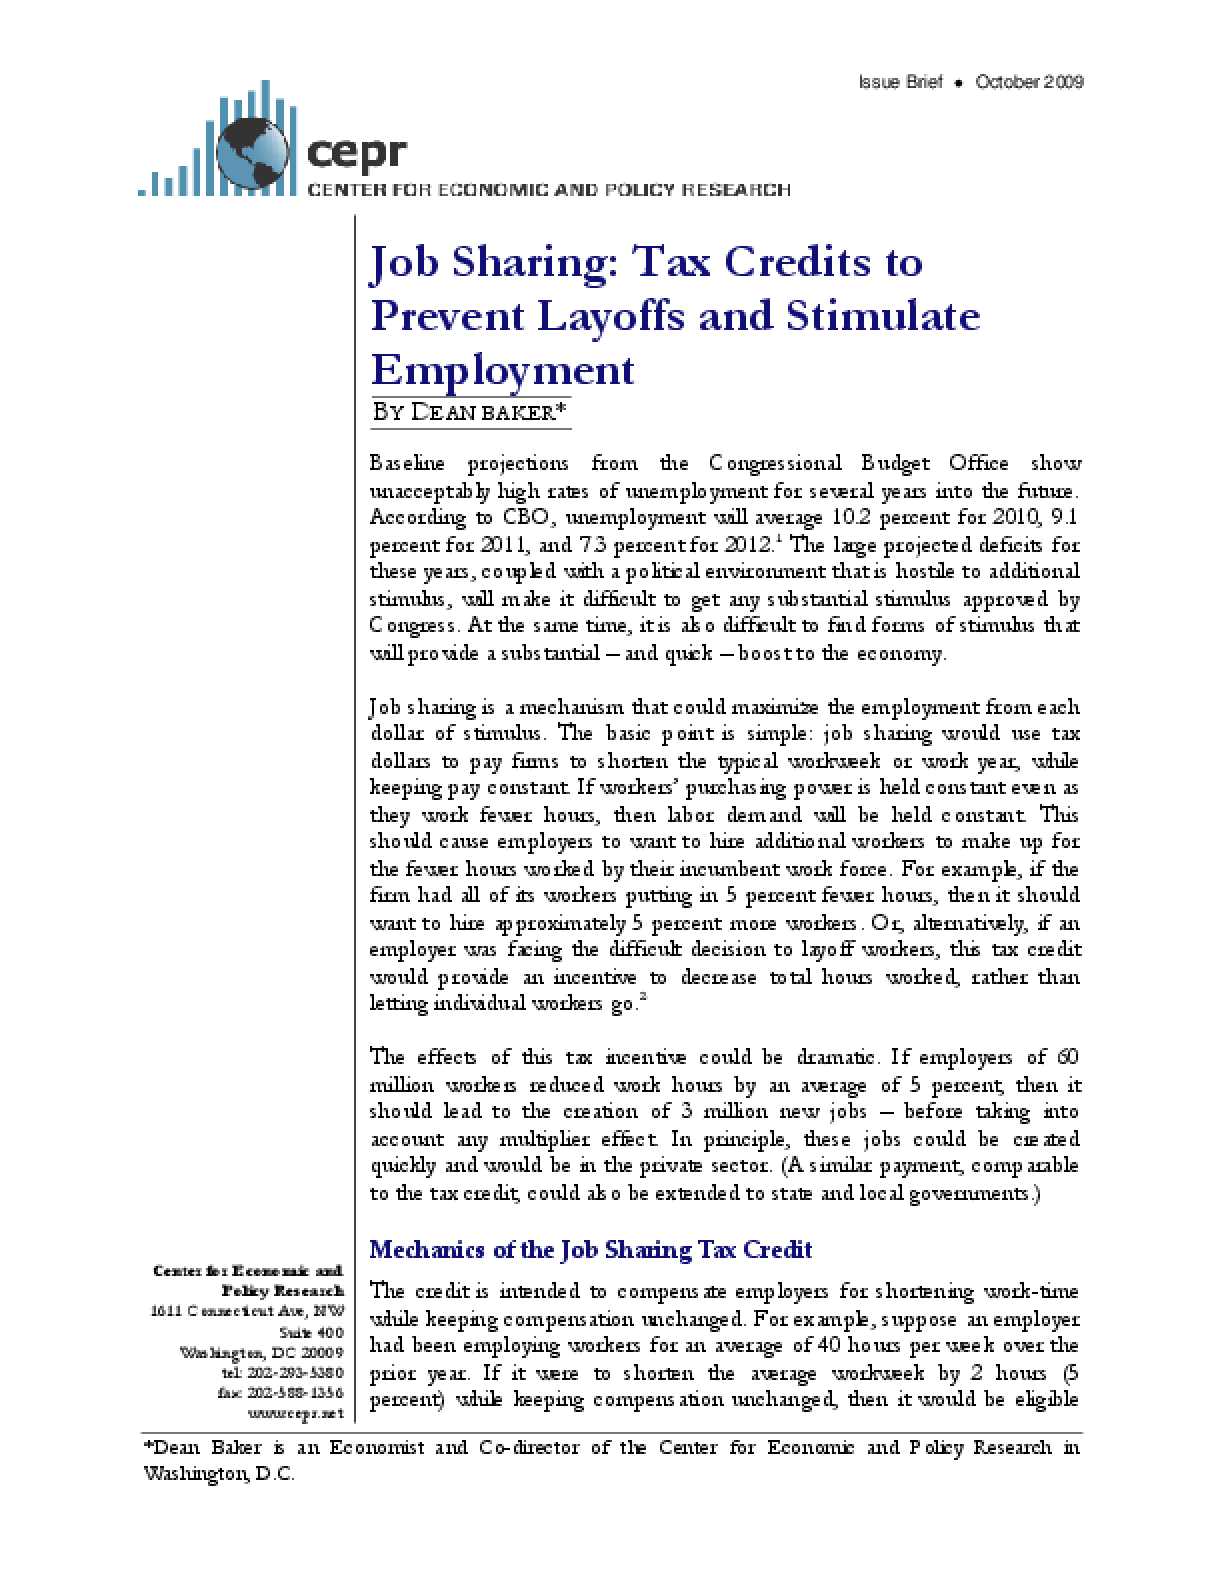 Job Sharing: Tax Credits to Prevent Layoffs and Stimulate Employment